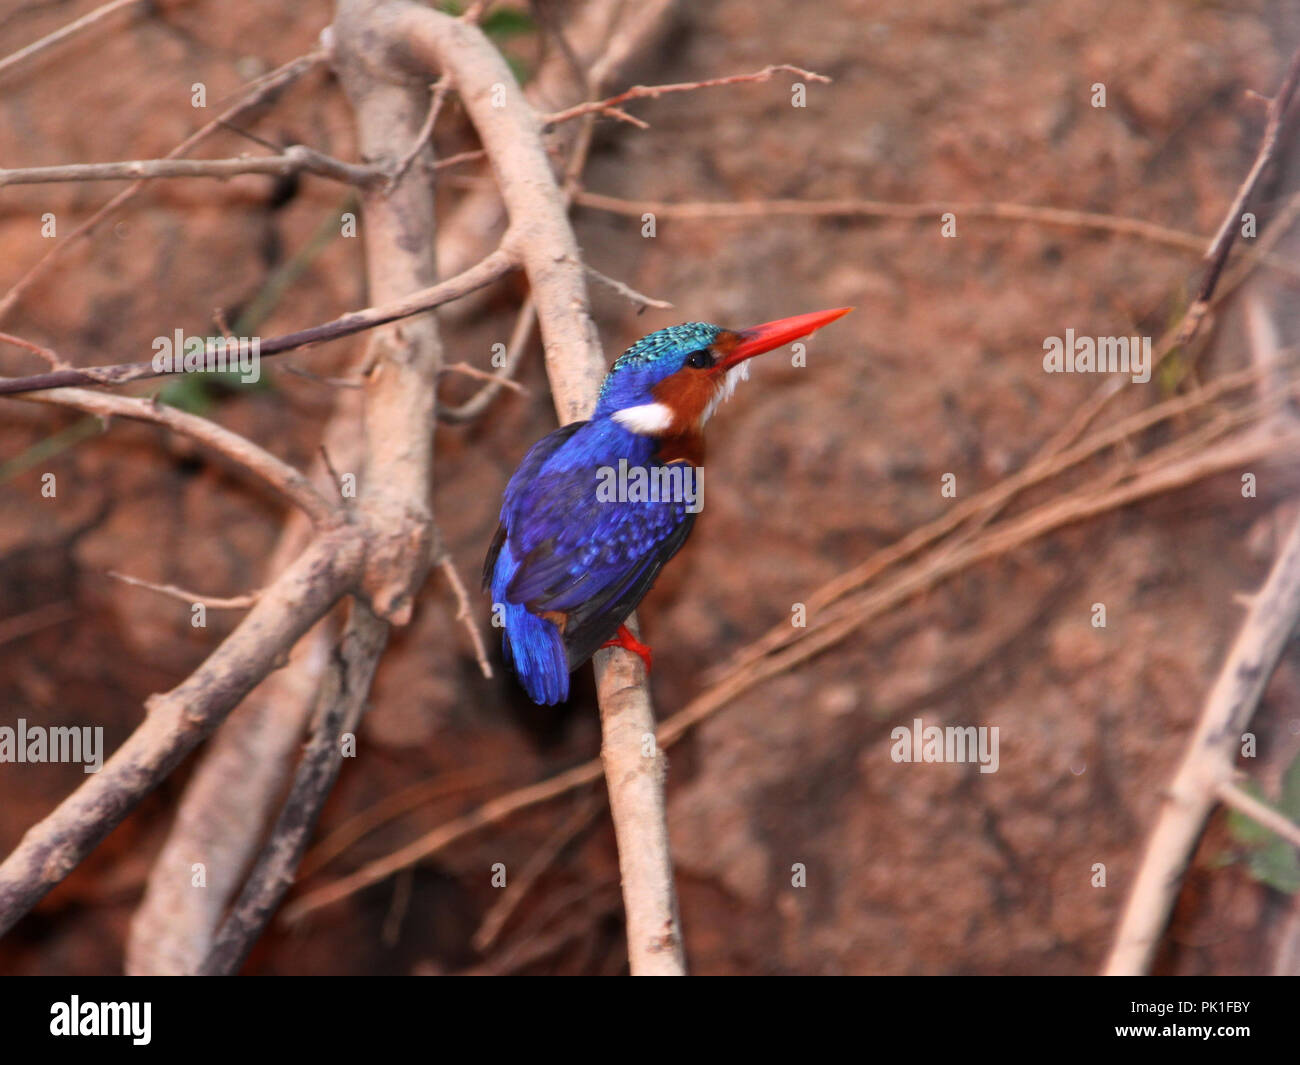 The Malachite Kingfisher is a diminutive jewel-like still hunter of small fish and invertebrates along the watercourses of African river and lakes. - Stock Image